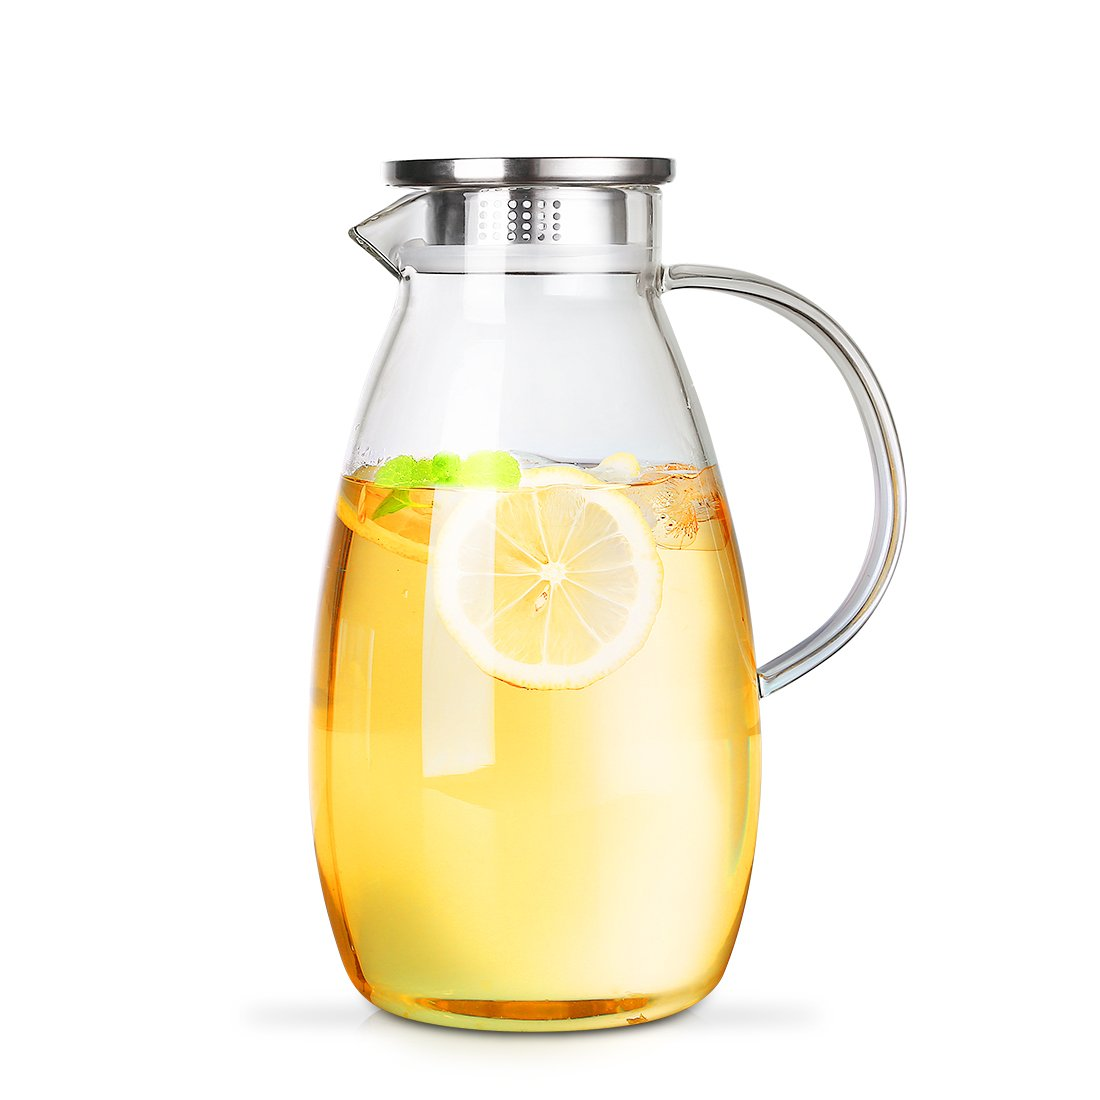 ONEISALL Glass Pitcher with Lid - Glass Water Carafe for Juice, Milk, Iced Tea - 2.6L by oneisall